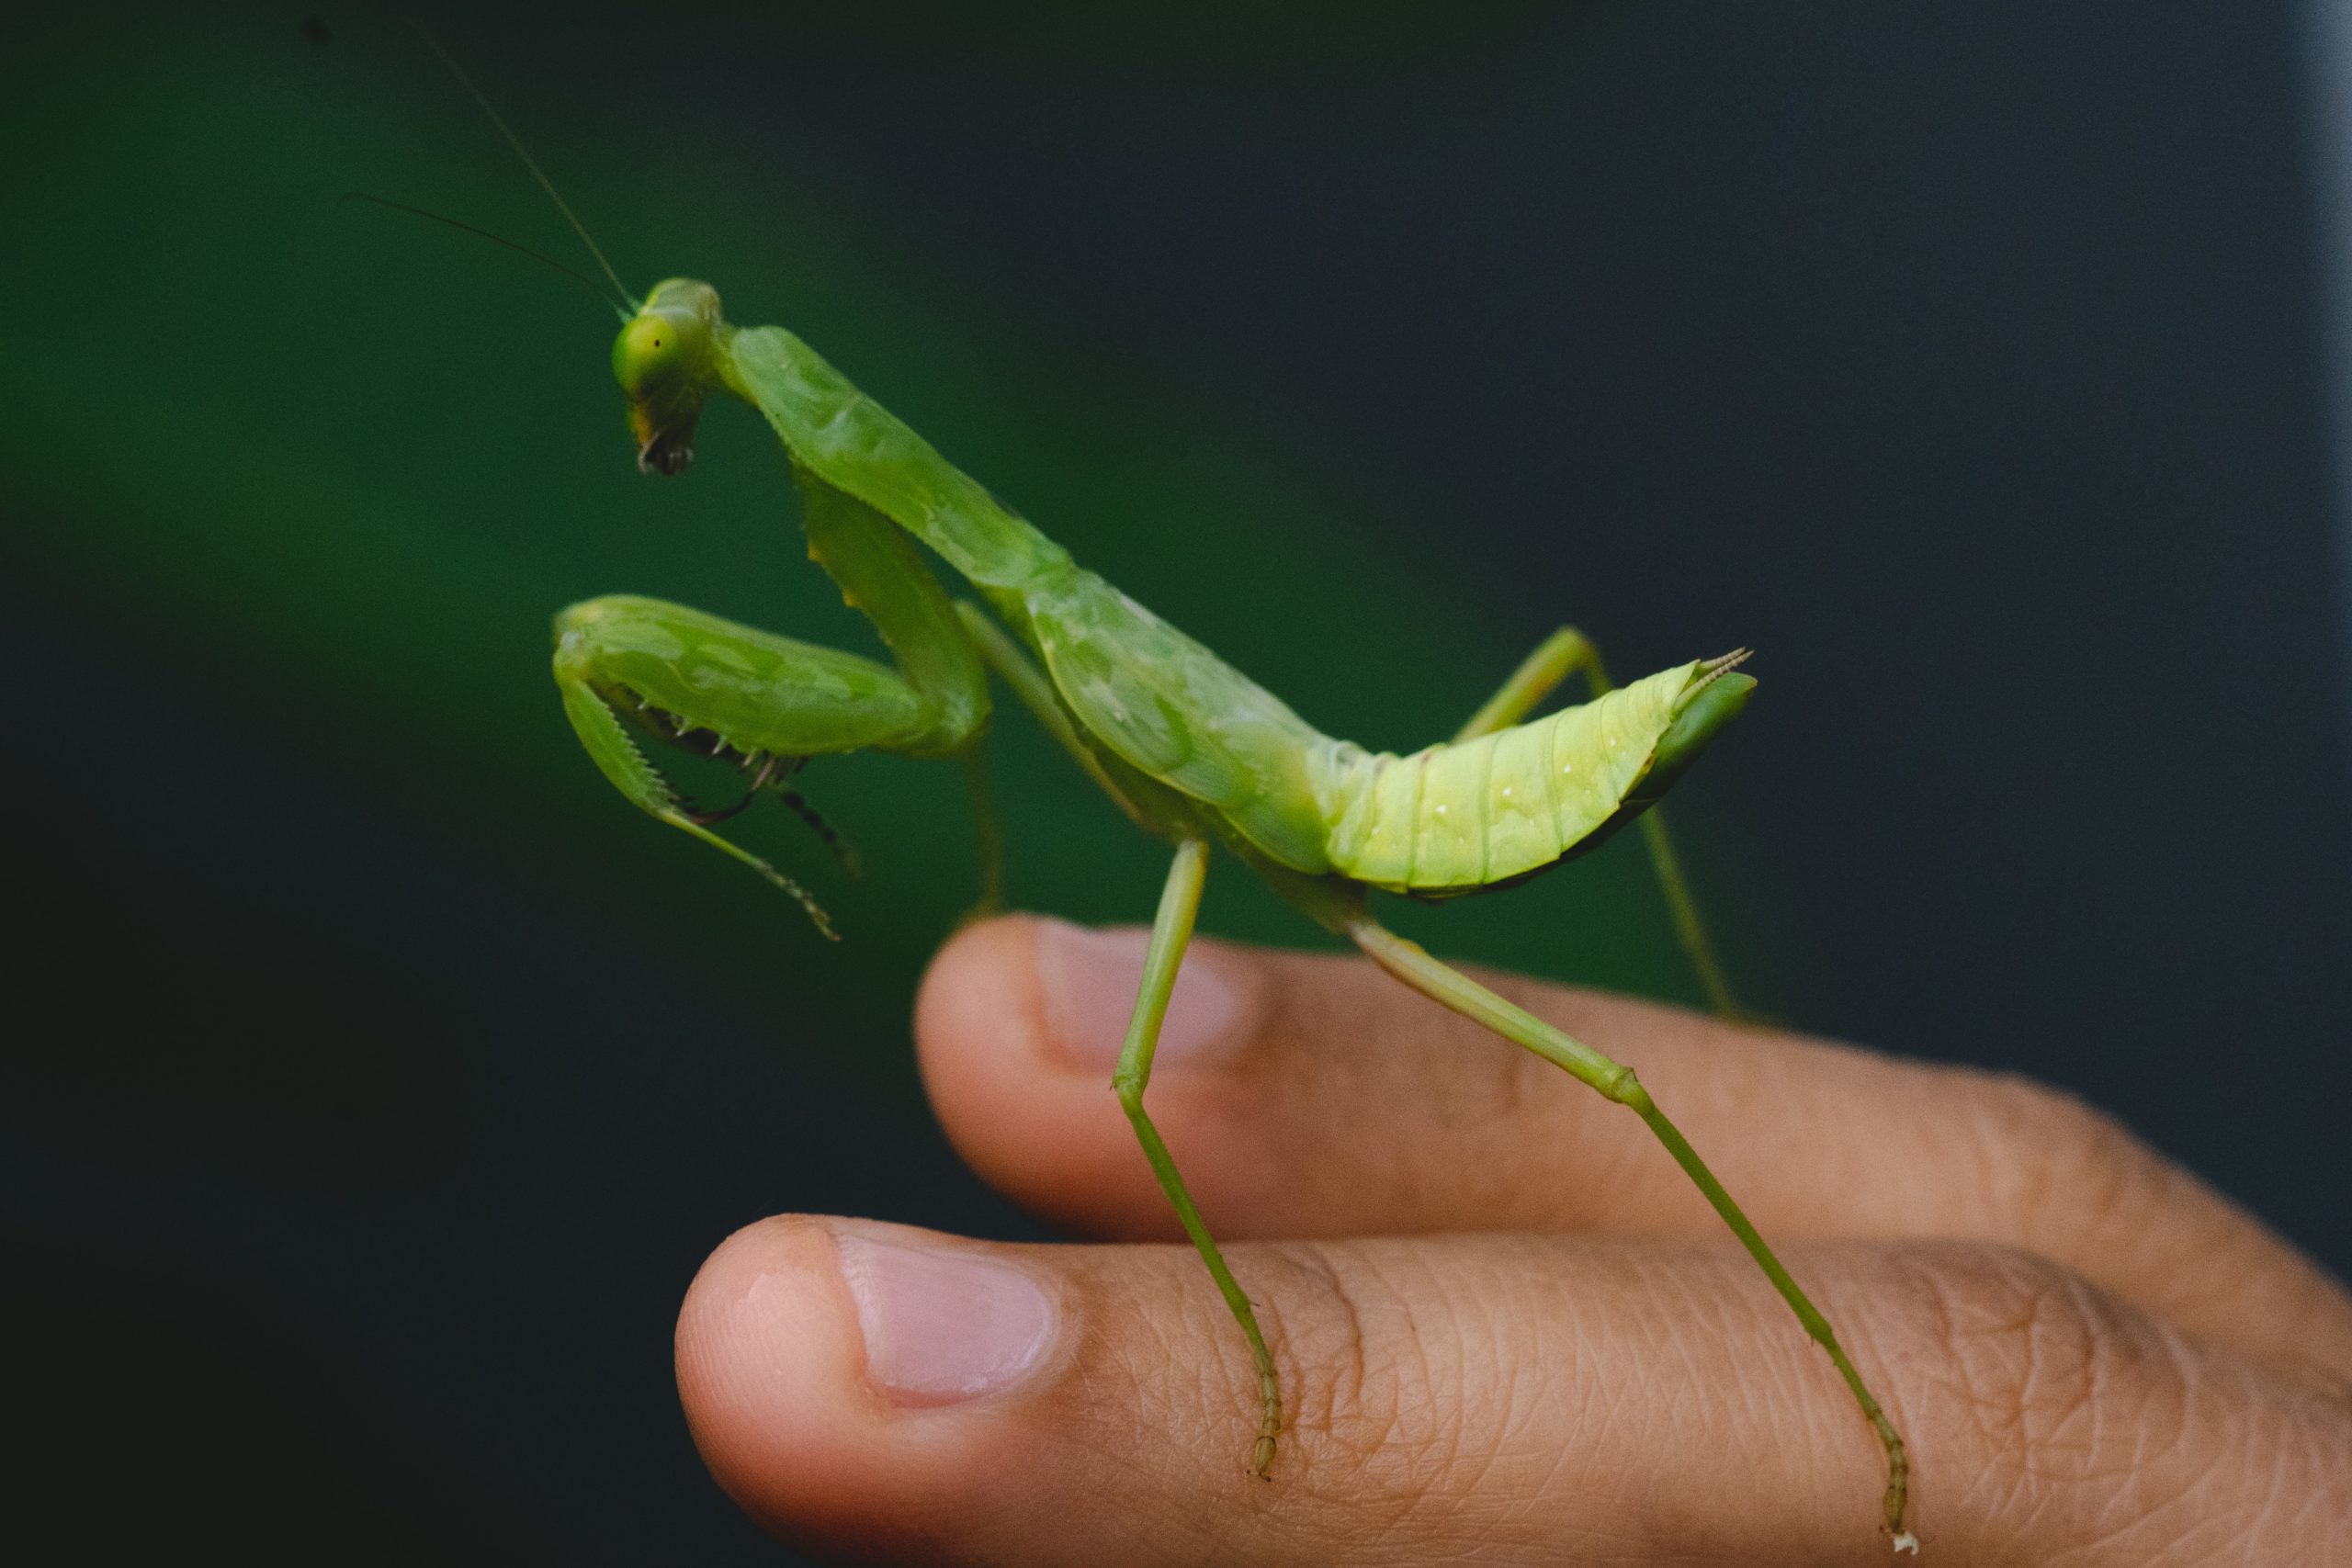 Photo of a preying mantis perched atop someone's hand.